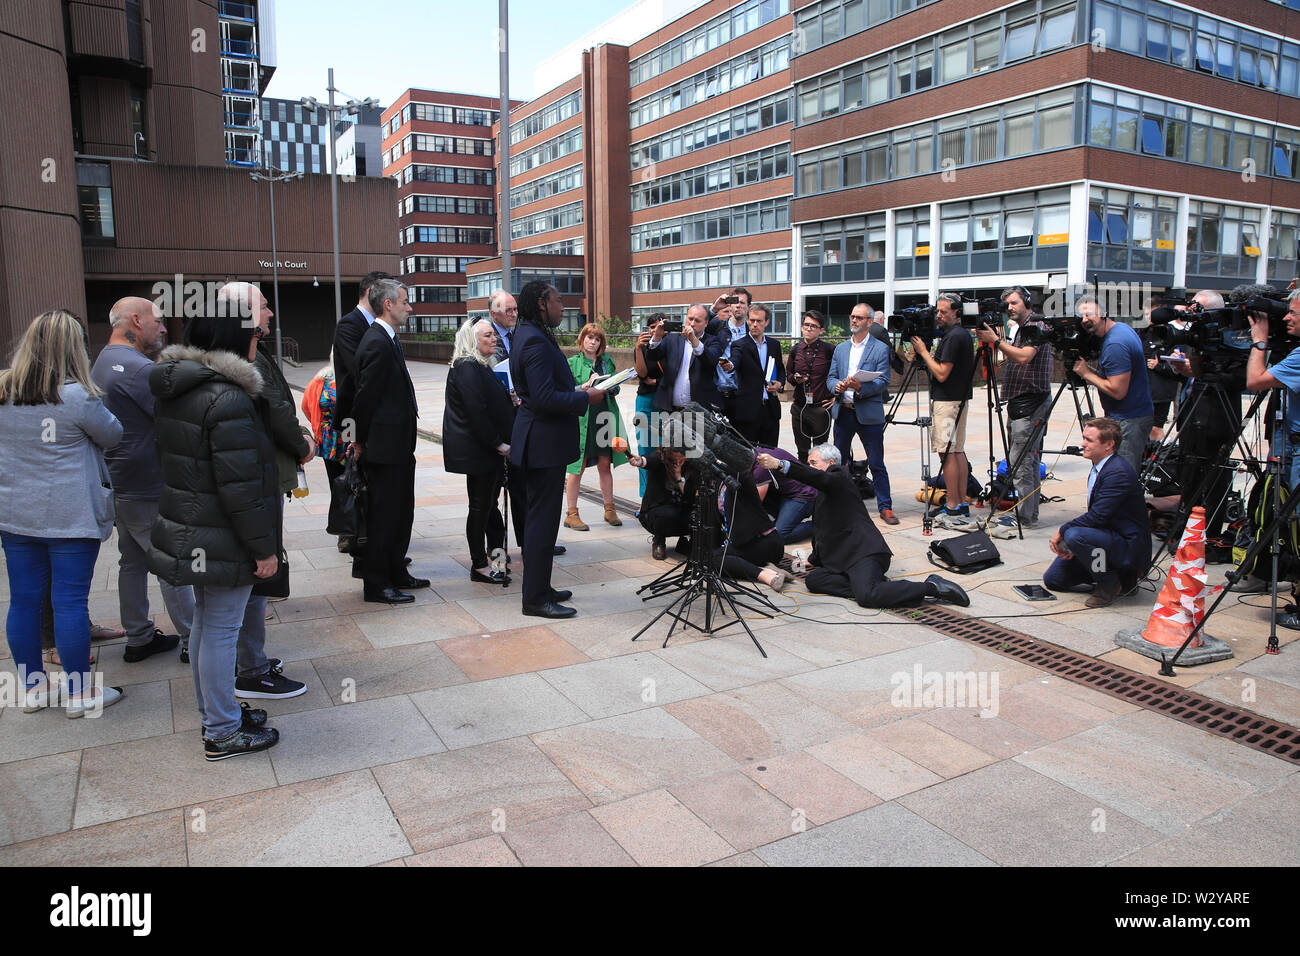 Anthony Grainger's family lawyer Leslie Thomas QC speaks to the media outside Liverpool Crown Court following the publication of the report of a public inquiry into the death of the 36 year old. Grainger from Bolton, was shot by a Greater Manchester Police firearms officer through the windscreen of a stolen Audi in a car park in Culcheth, Cheshire, on March 3 2012. - Stock Image